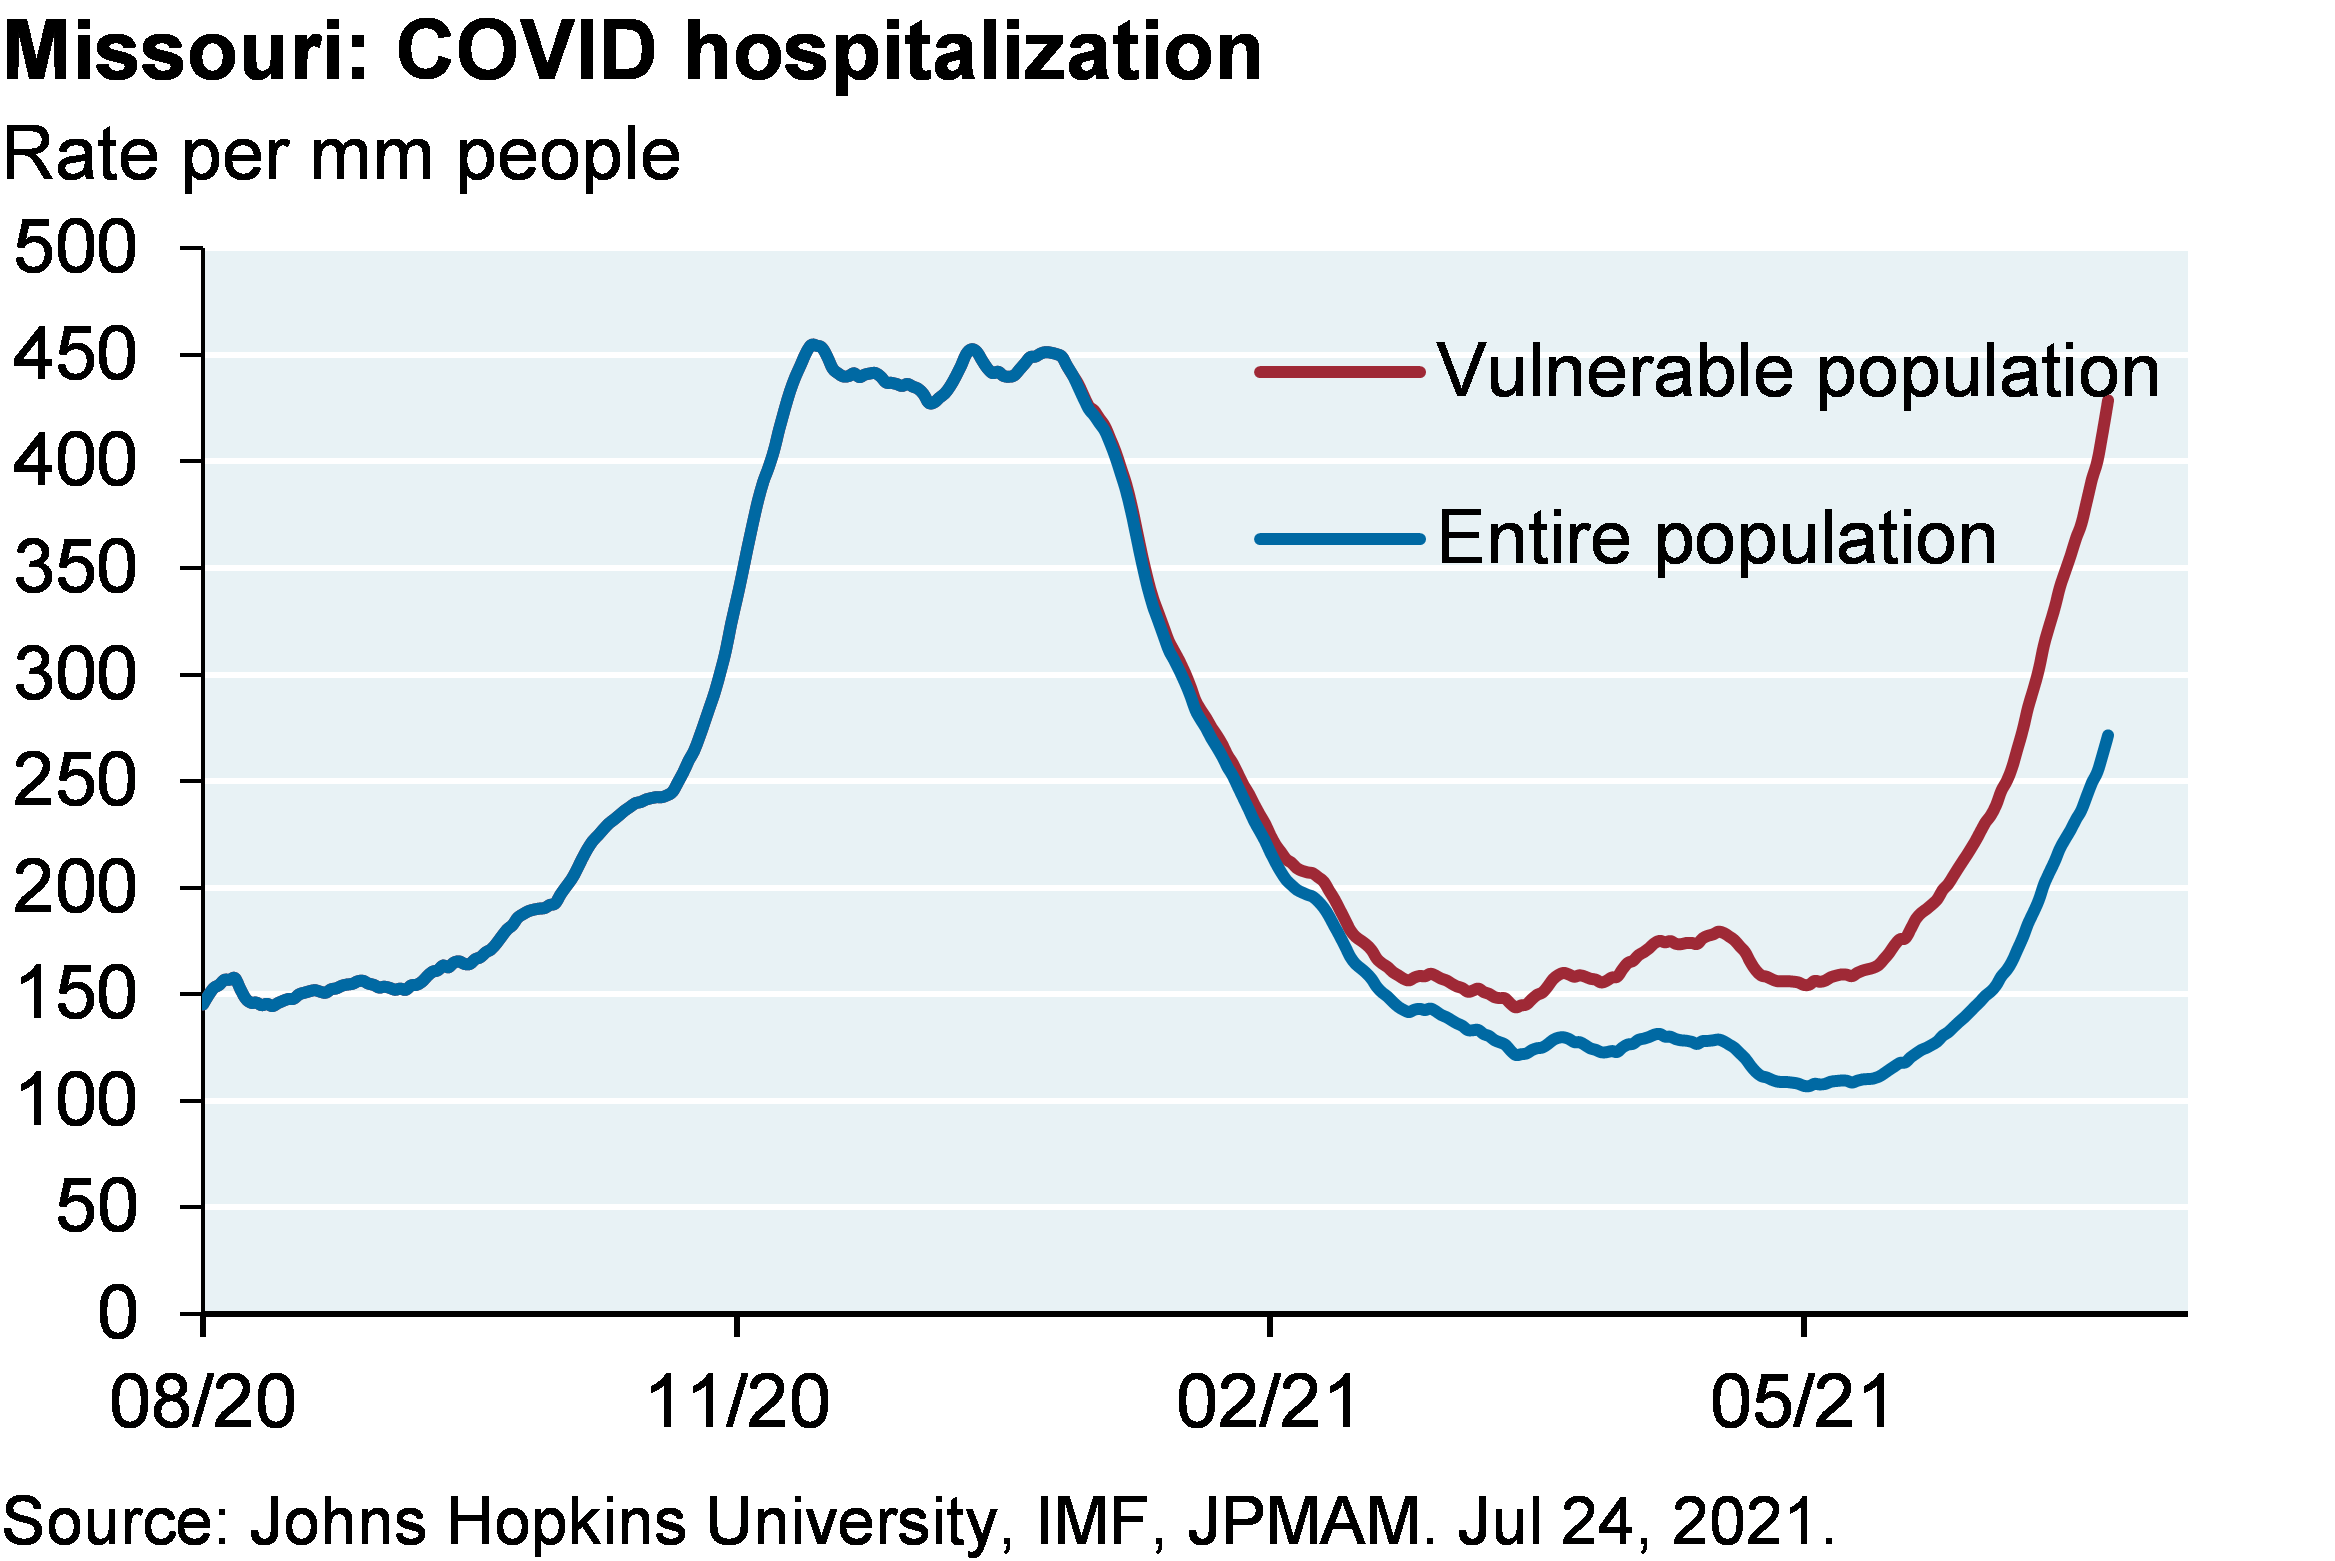 Line chart shows COVID hospitalizations in Missouri for the vulnerable population compared to the entire population, shown as the hospitalization rate per million people. Hospitalizations for the entire population are around 250 per million compared to almost 450 per million among the vulnerable population, which is in line with the winter peak of around 450 per million.